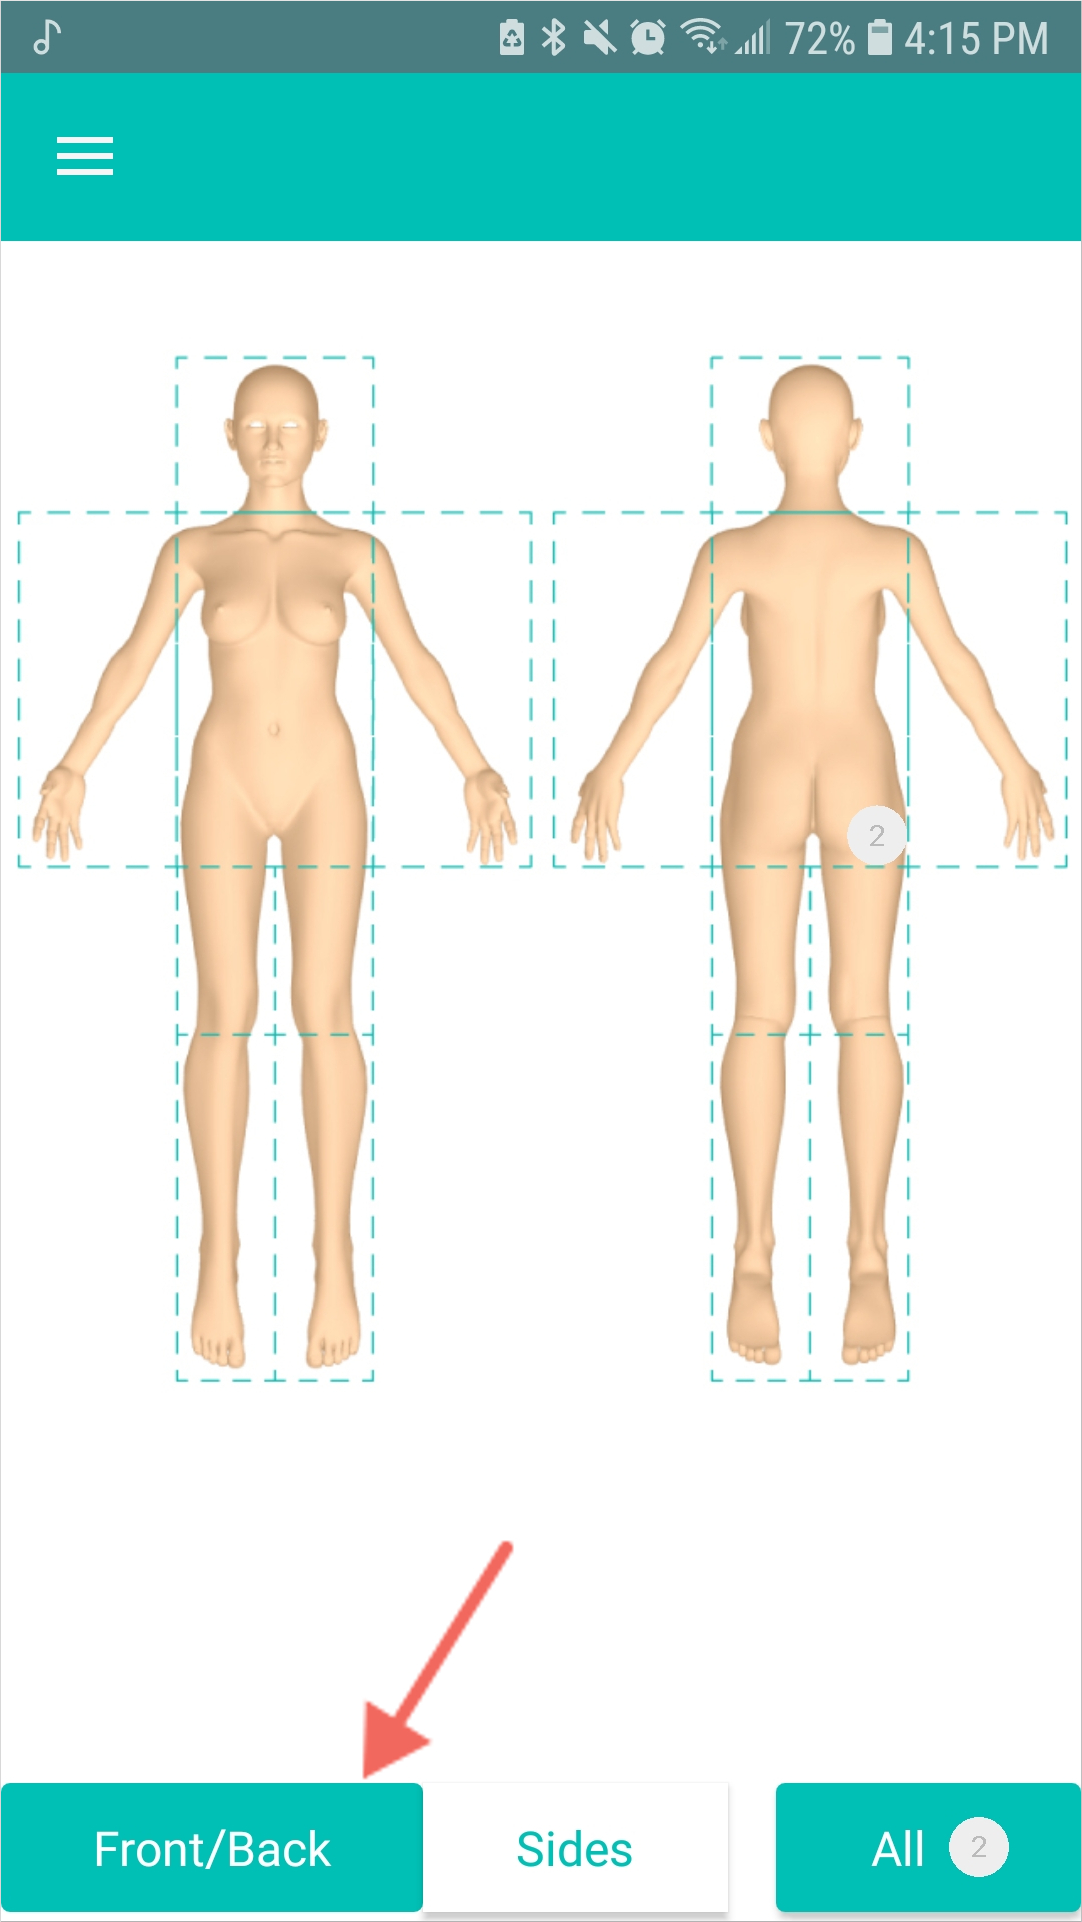 2._Select_body_part.jpg